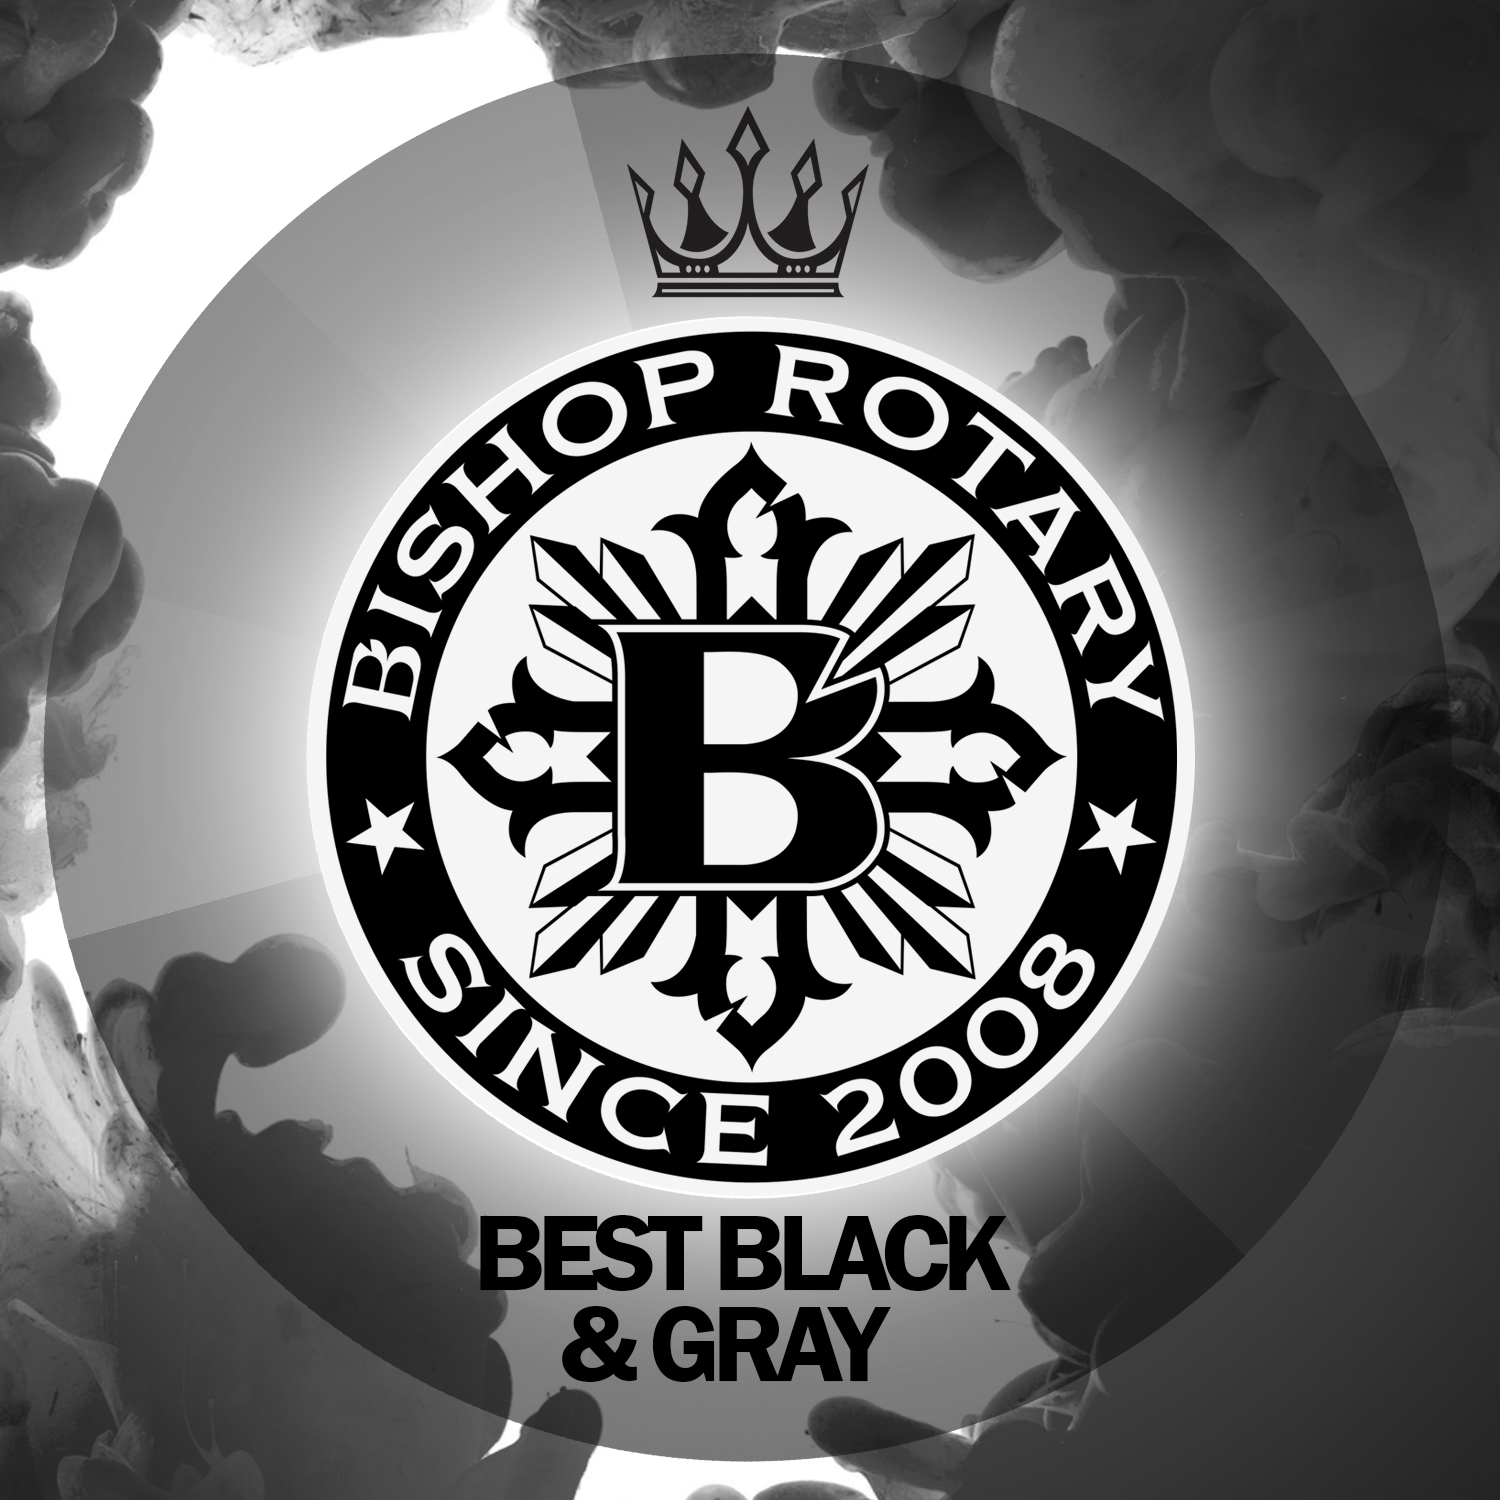 Best Black & Grey Tattoos | Bishop Rotary